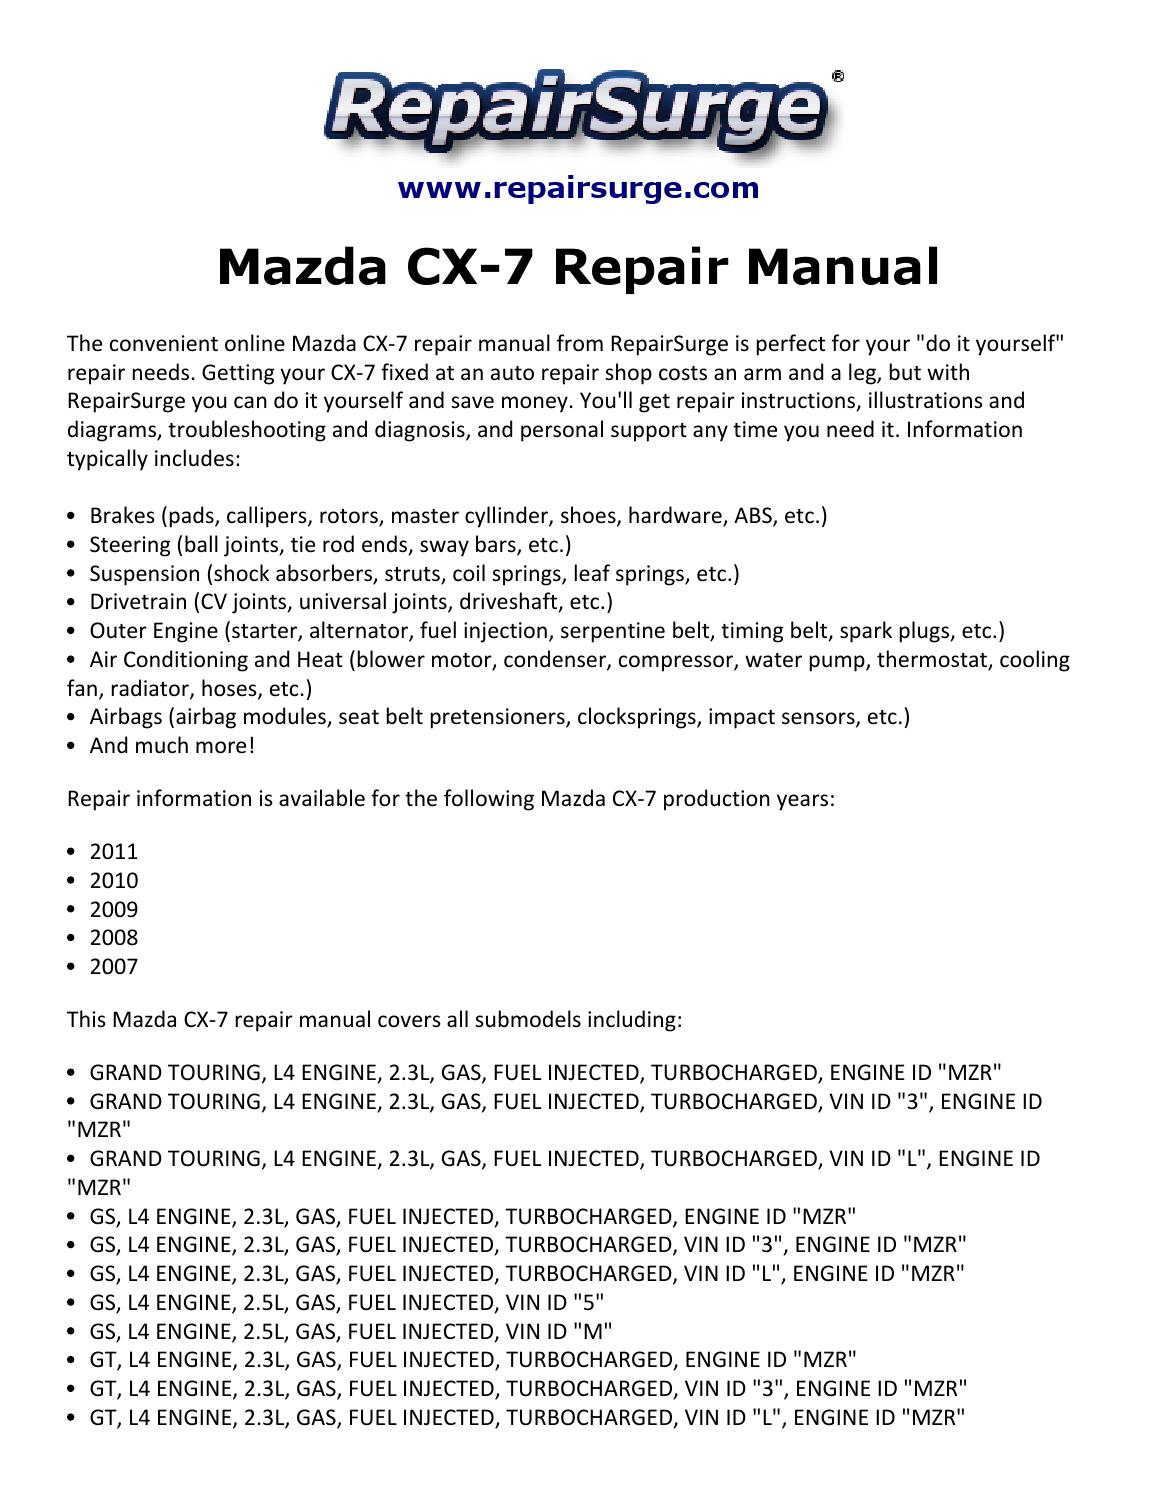 2008 Cx 7 Engine Diagram Wiring Library Speakerwiringdiagramgif Mazda Repair Manual 2007 2011 By Kevin Green Issuu